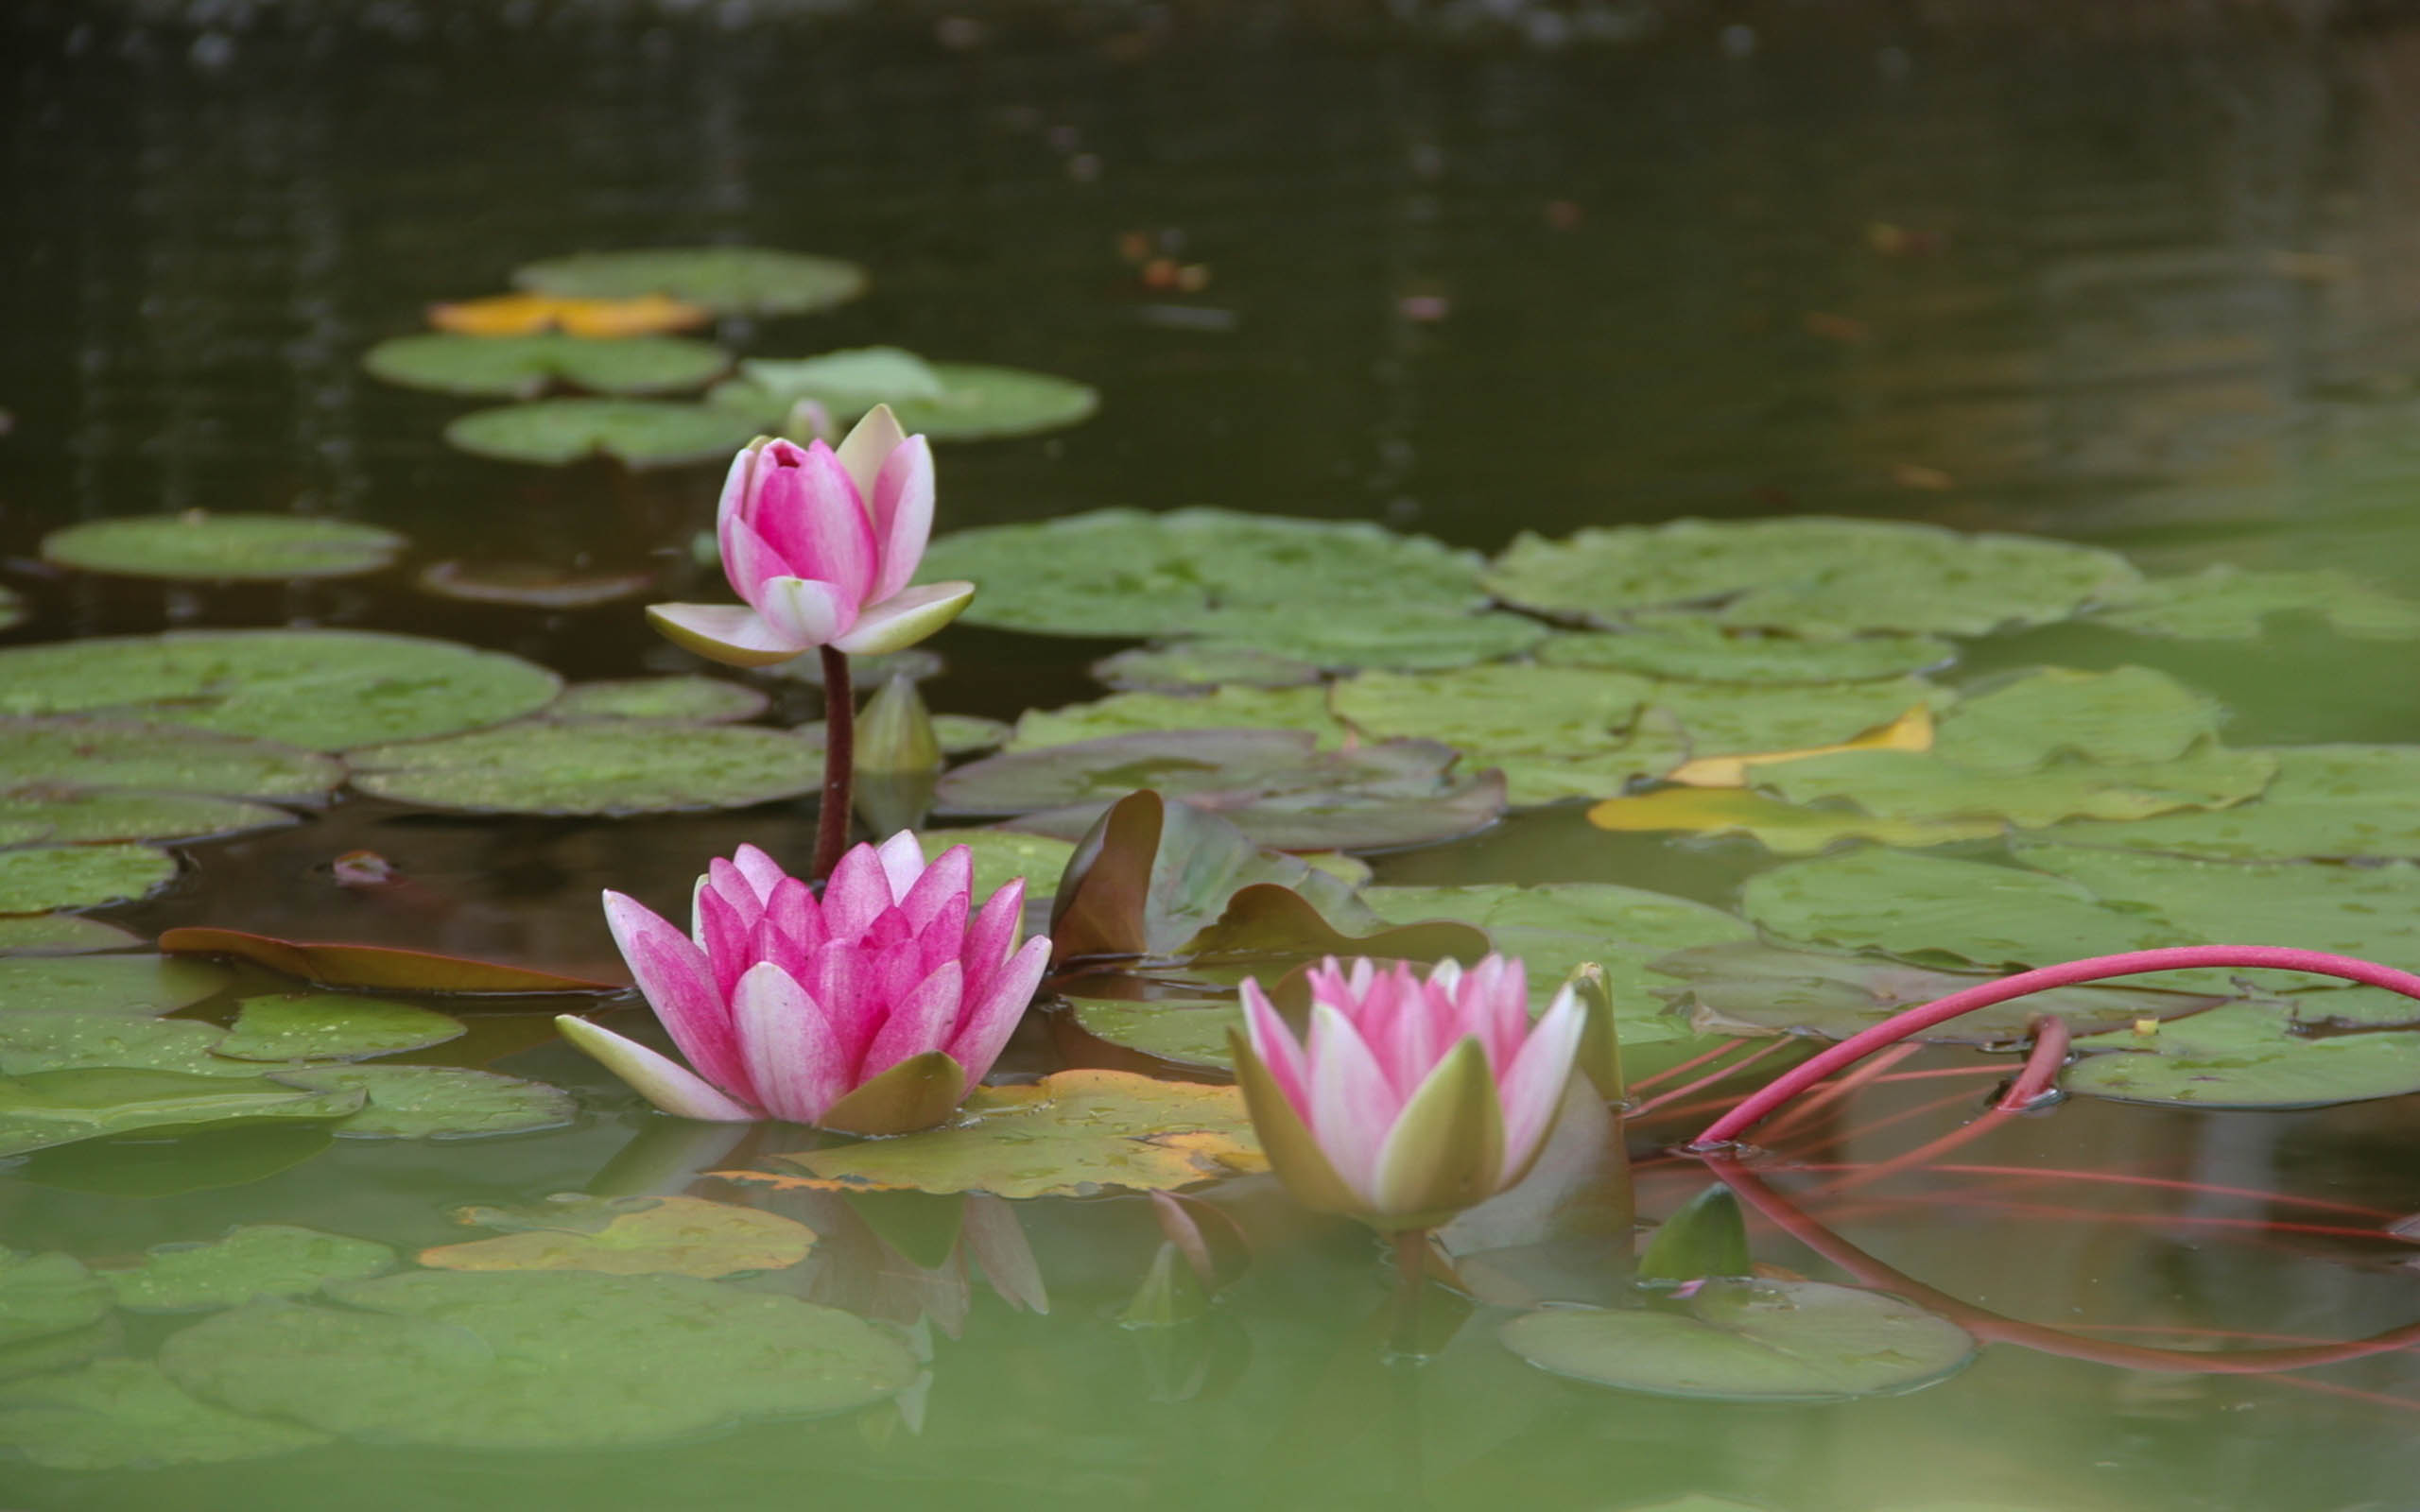 Lotus Flower Beautiful High Quality Hd Wallpapers All Hd Wallpapers